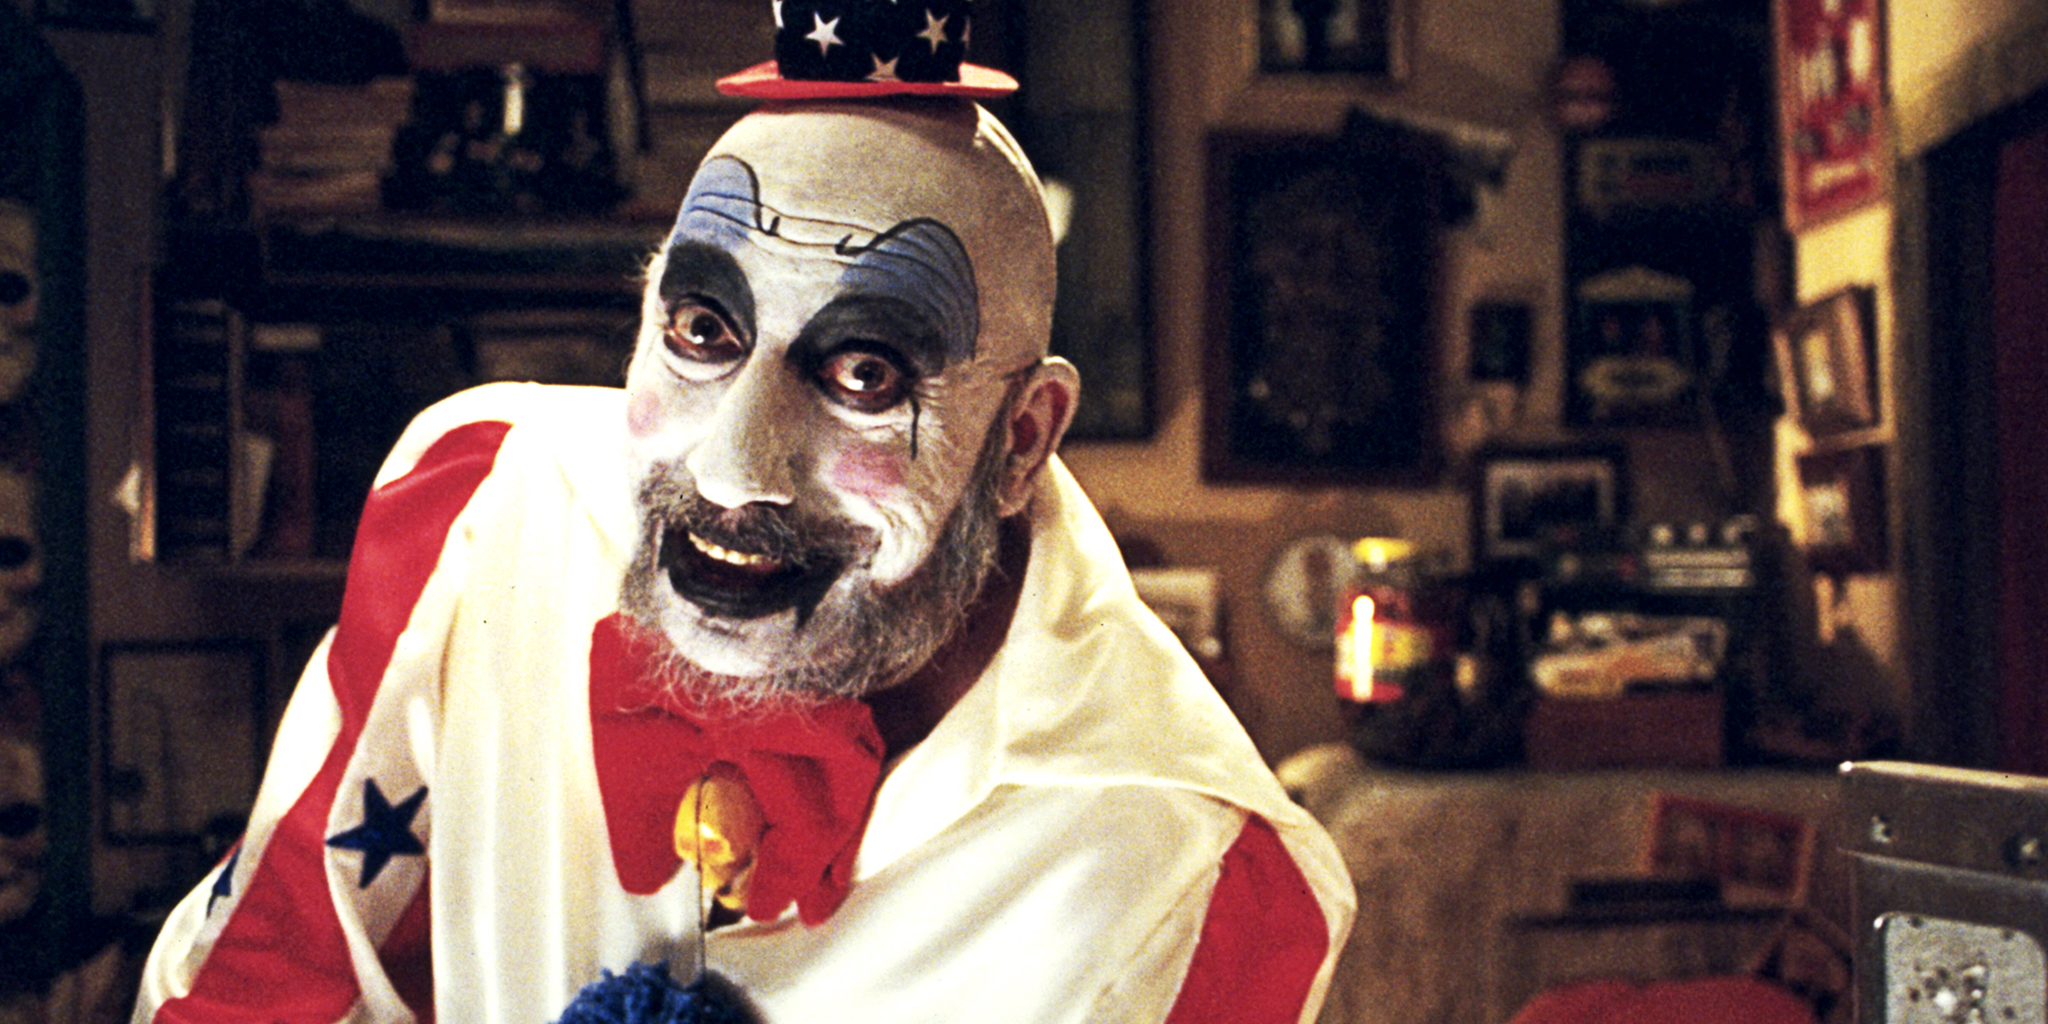 On the Road to 'Hell': Looking Back on 'House of 1000 Corpses' and 'The Devil's Rejects' - Bloody Disgusting